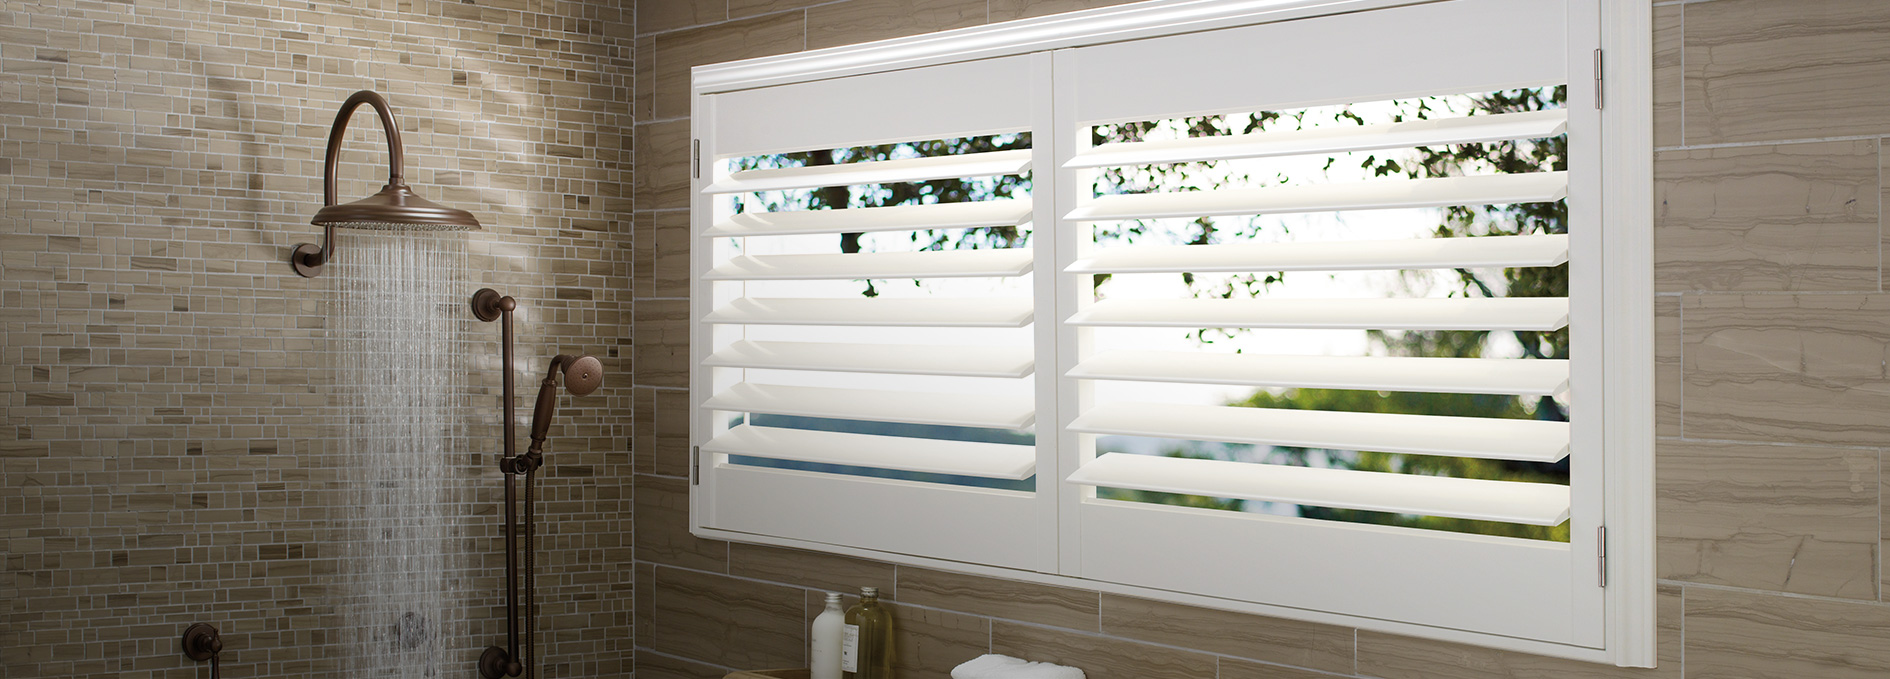 bathroom design solutions window treatments - Bathroom Window Treatments